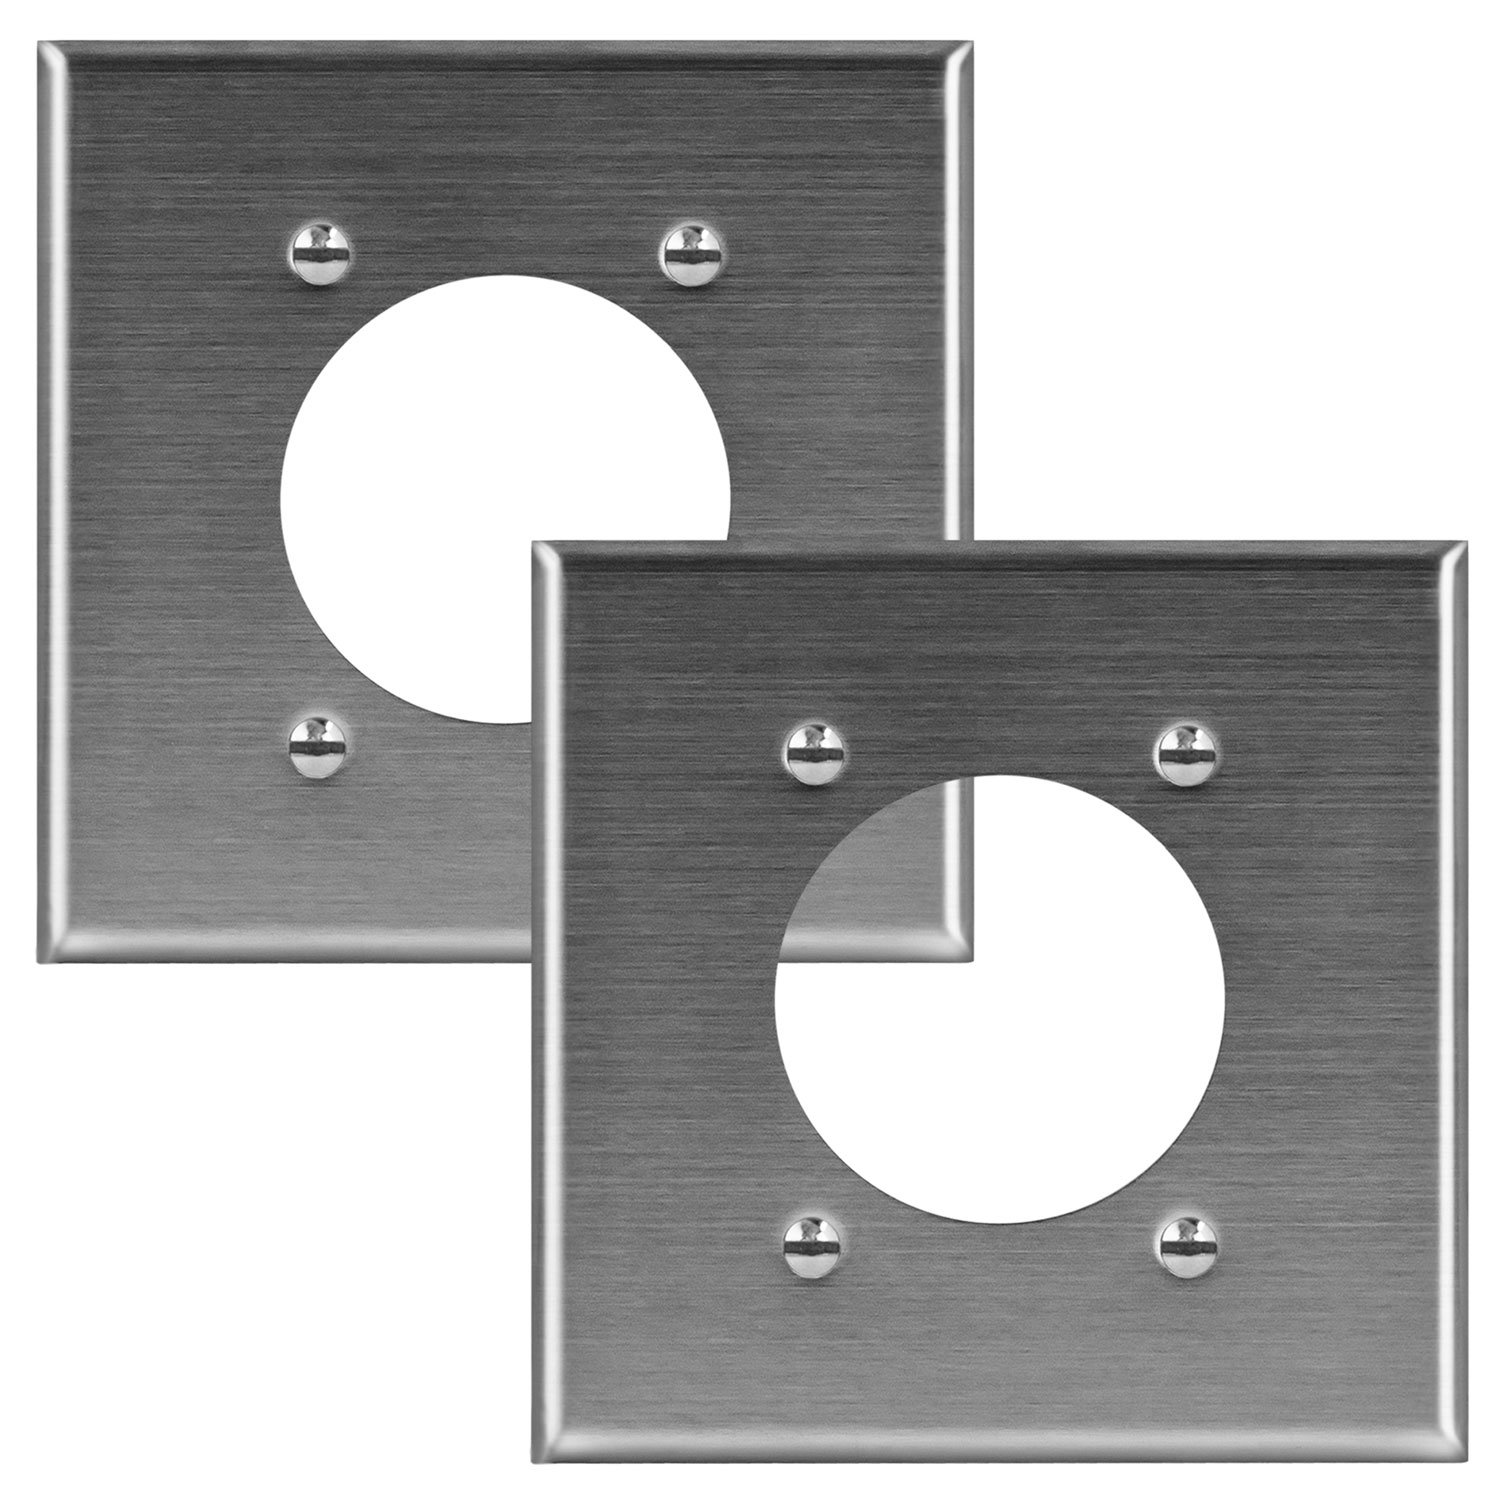 Enerlites 7792-2PCS Stainless Steel Wall Plate for Electrical Dryer/Range Oven Straight Blade Locking Receptacle Power Outlets, 2-Gang Standard Size, 2.125'' Diameter Hole (2 Pack)